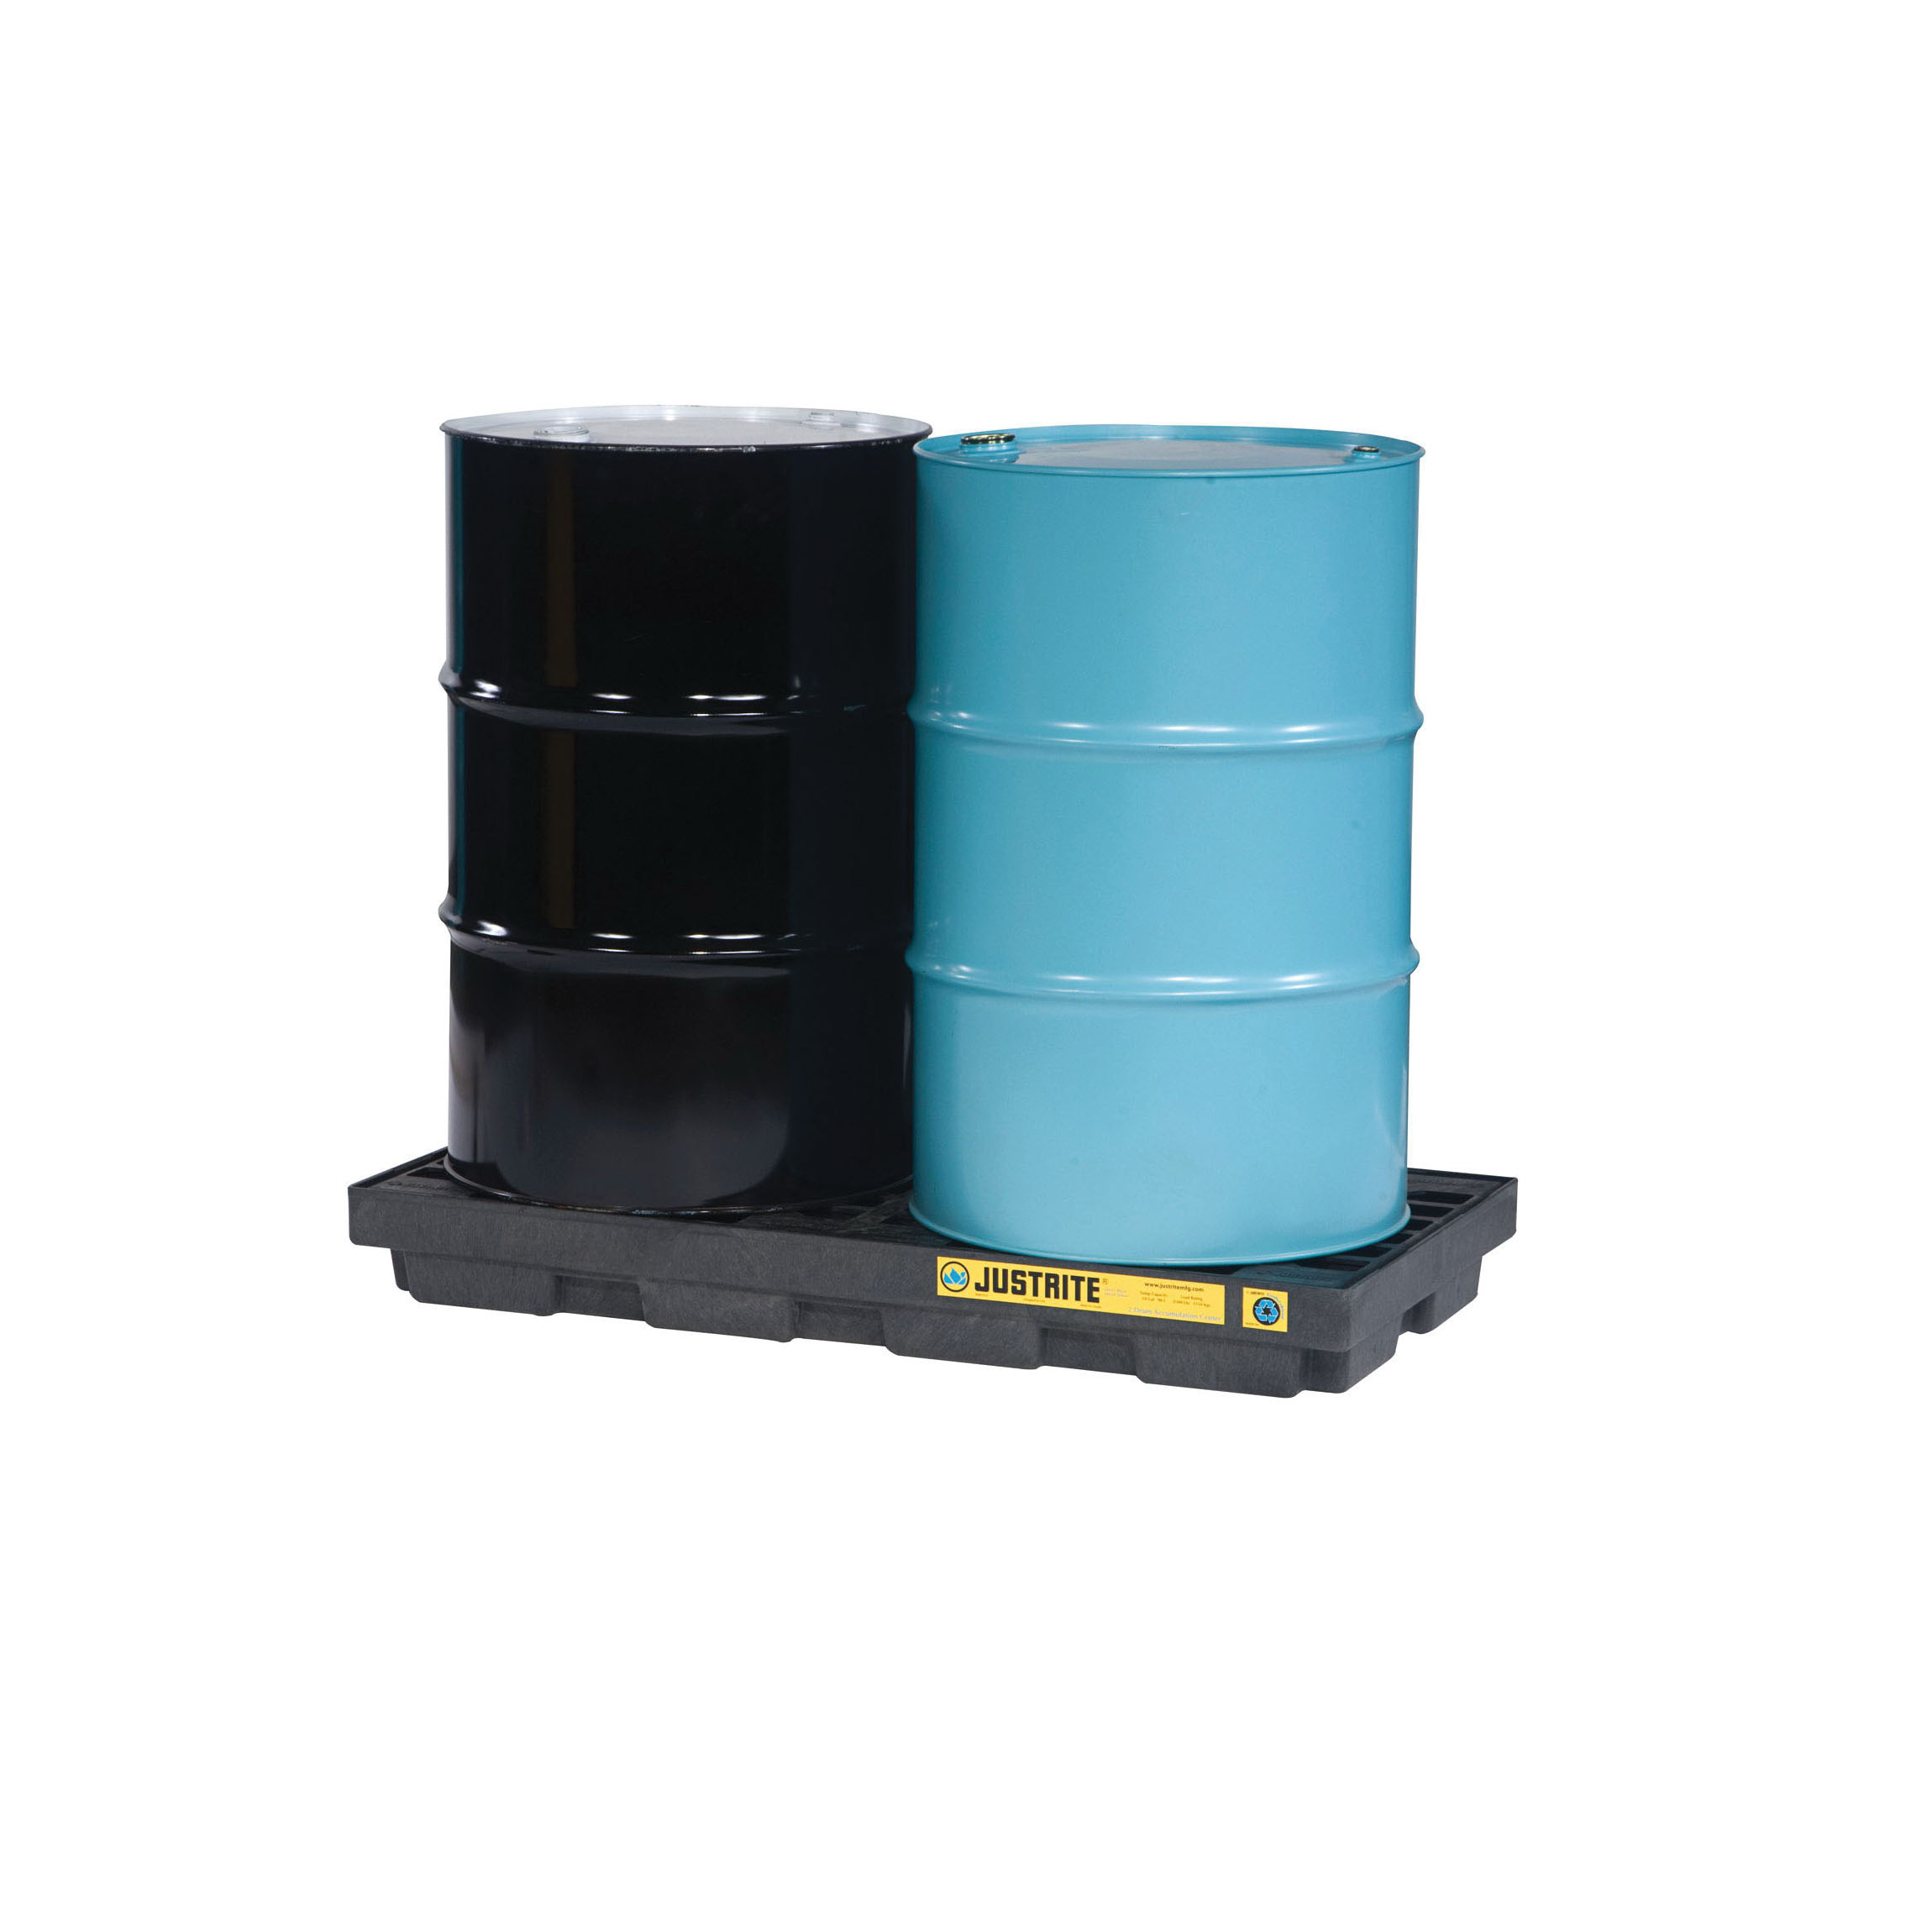 Justrite® 28655 EcoPolyBlend™ Accumulation Center, 2 Drums, 24 gal Spill, 2500 lb Load, 100% Recycled Polyethylene